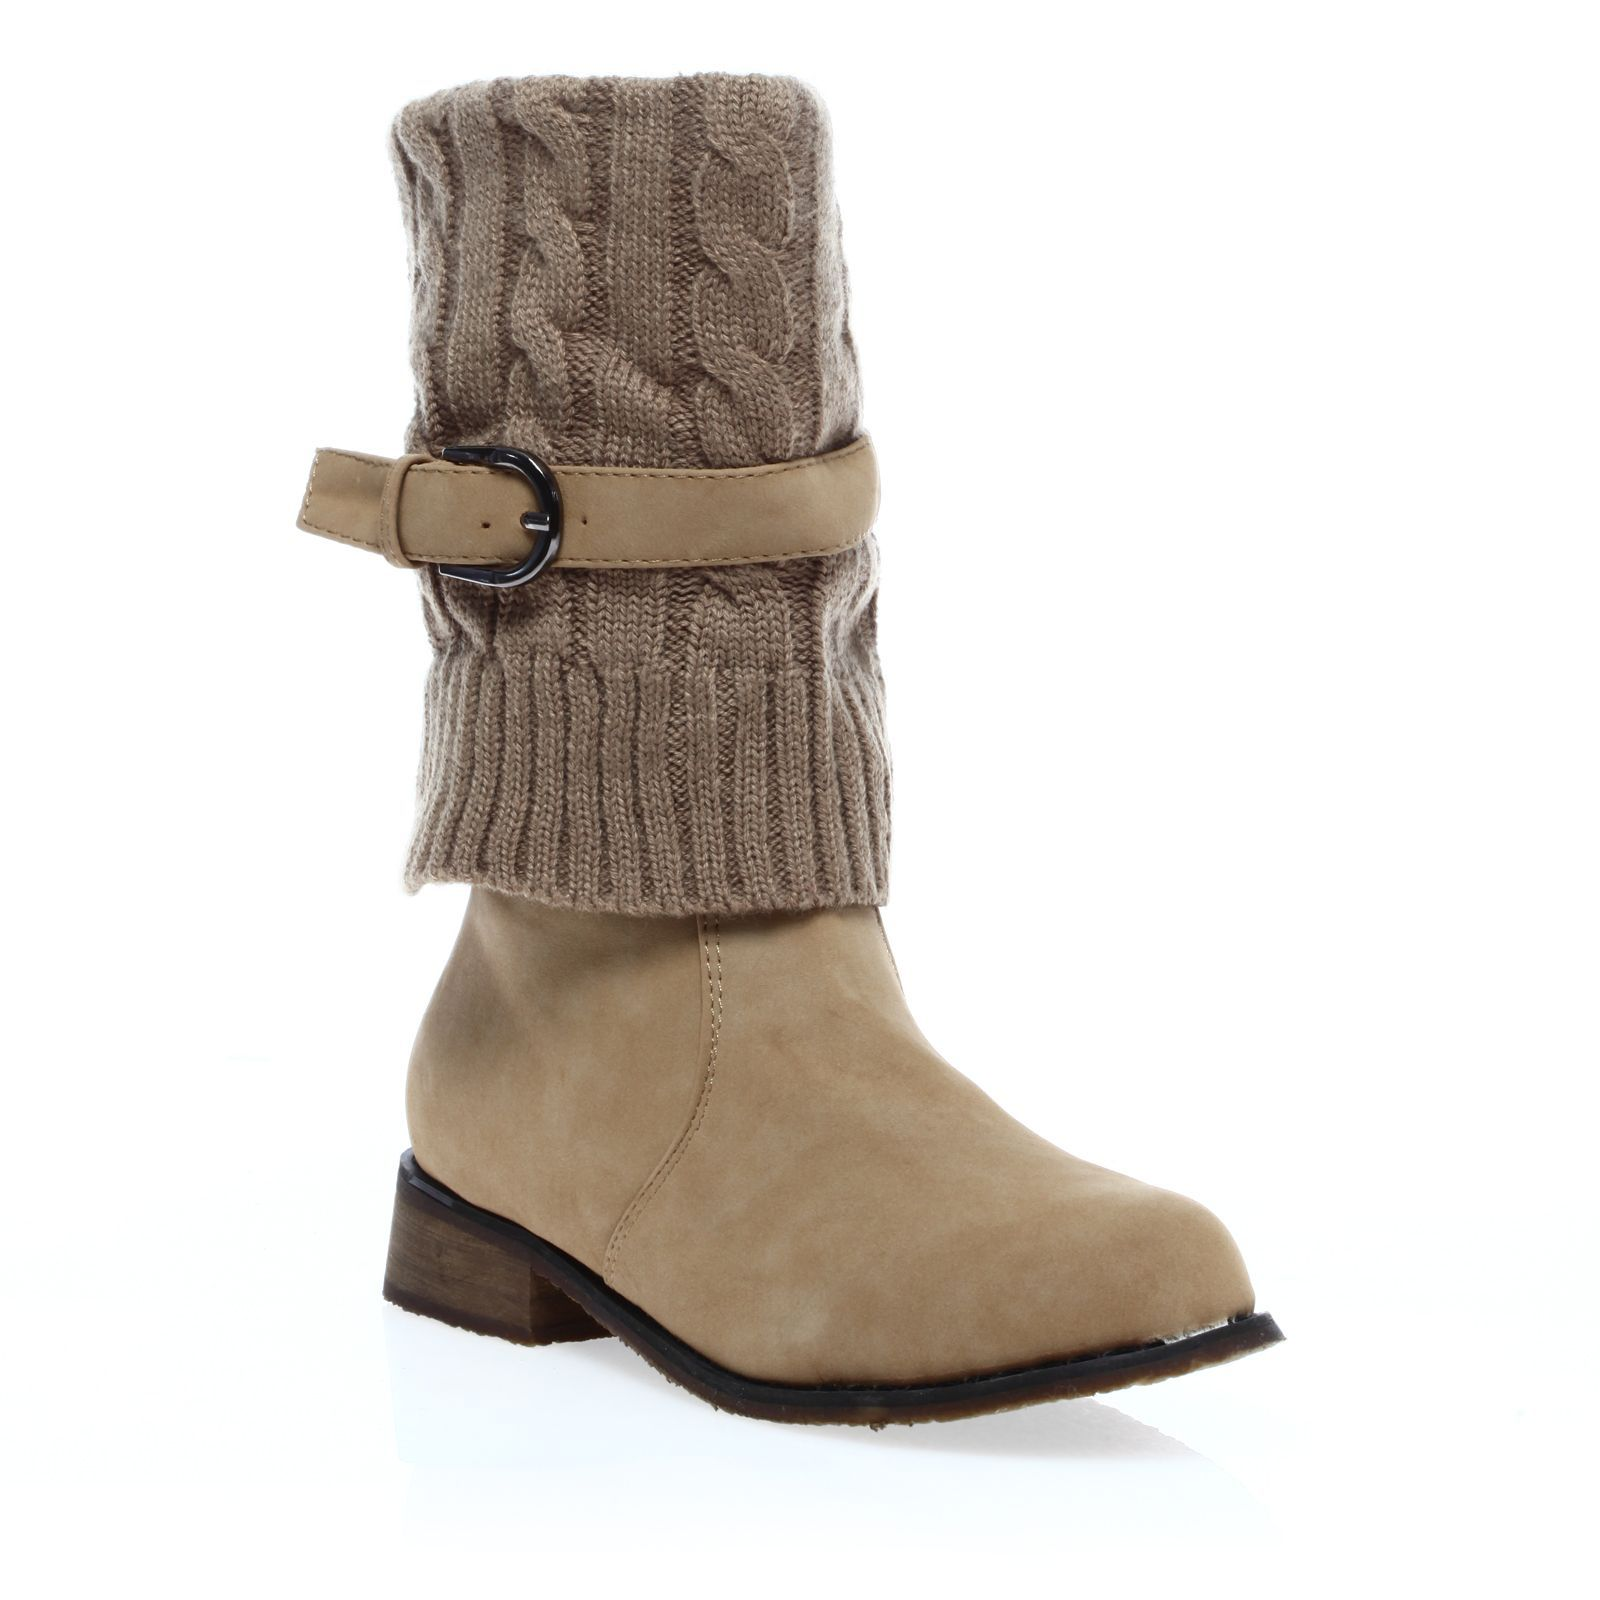 1001 Shoes bottines camel